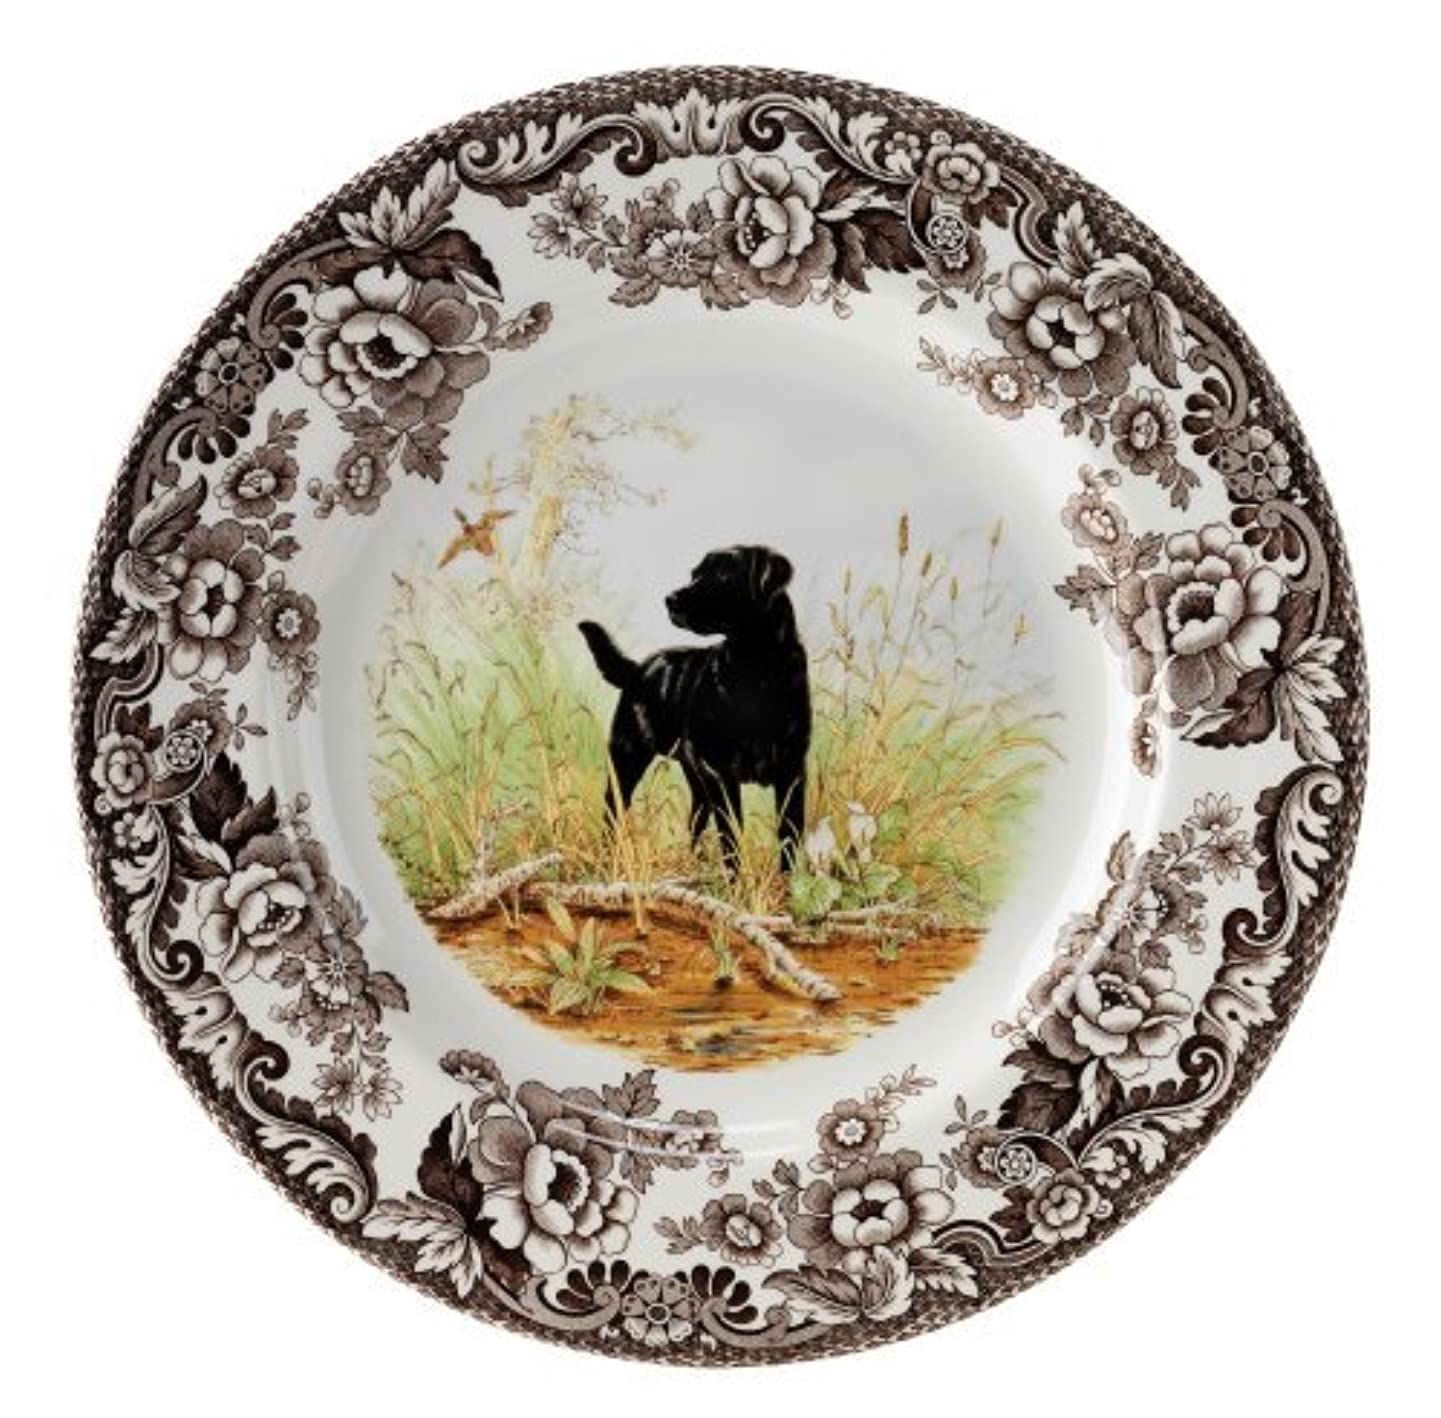 Spode Woodland Hunting Dogs Black Labrador Salad Plate by Spode